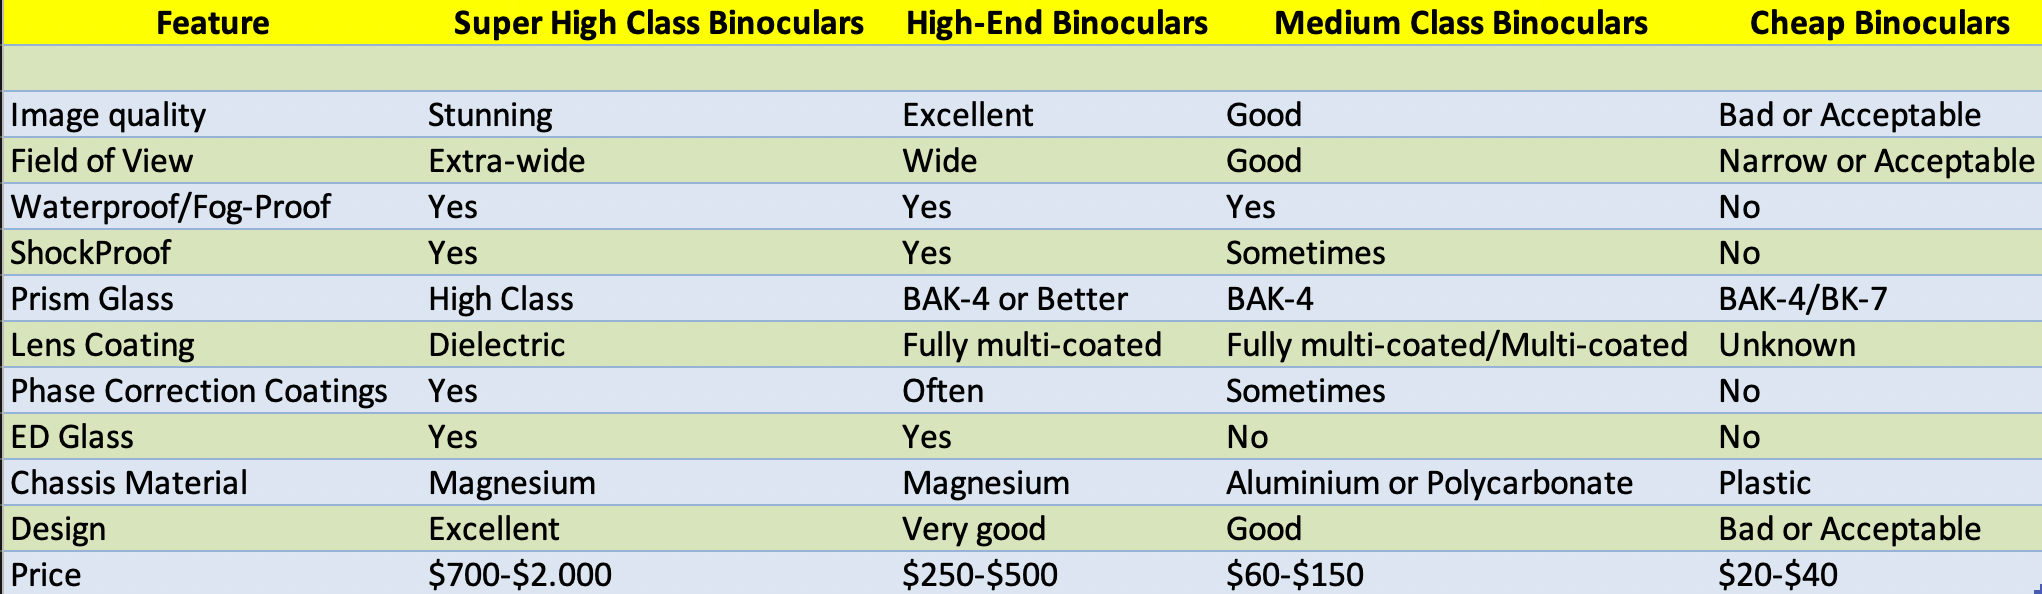 compariosn table-expensive-medium-class-cheap-binoculars